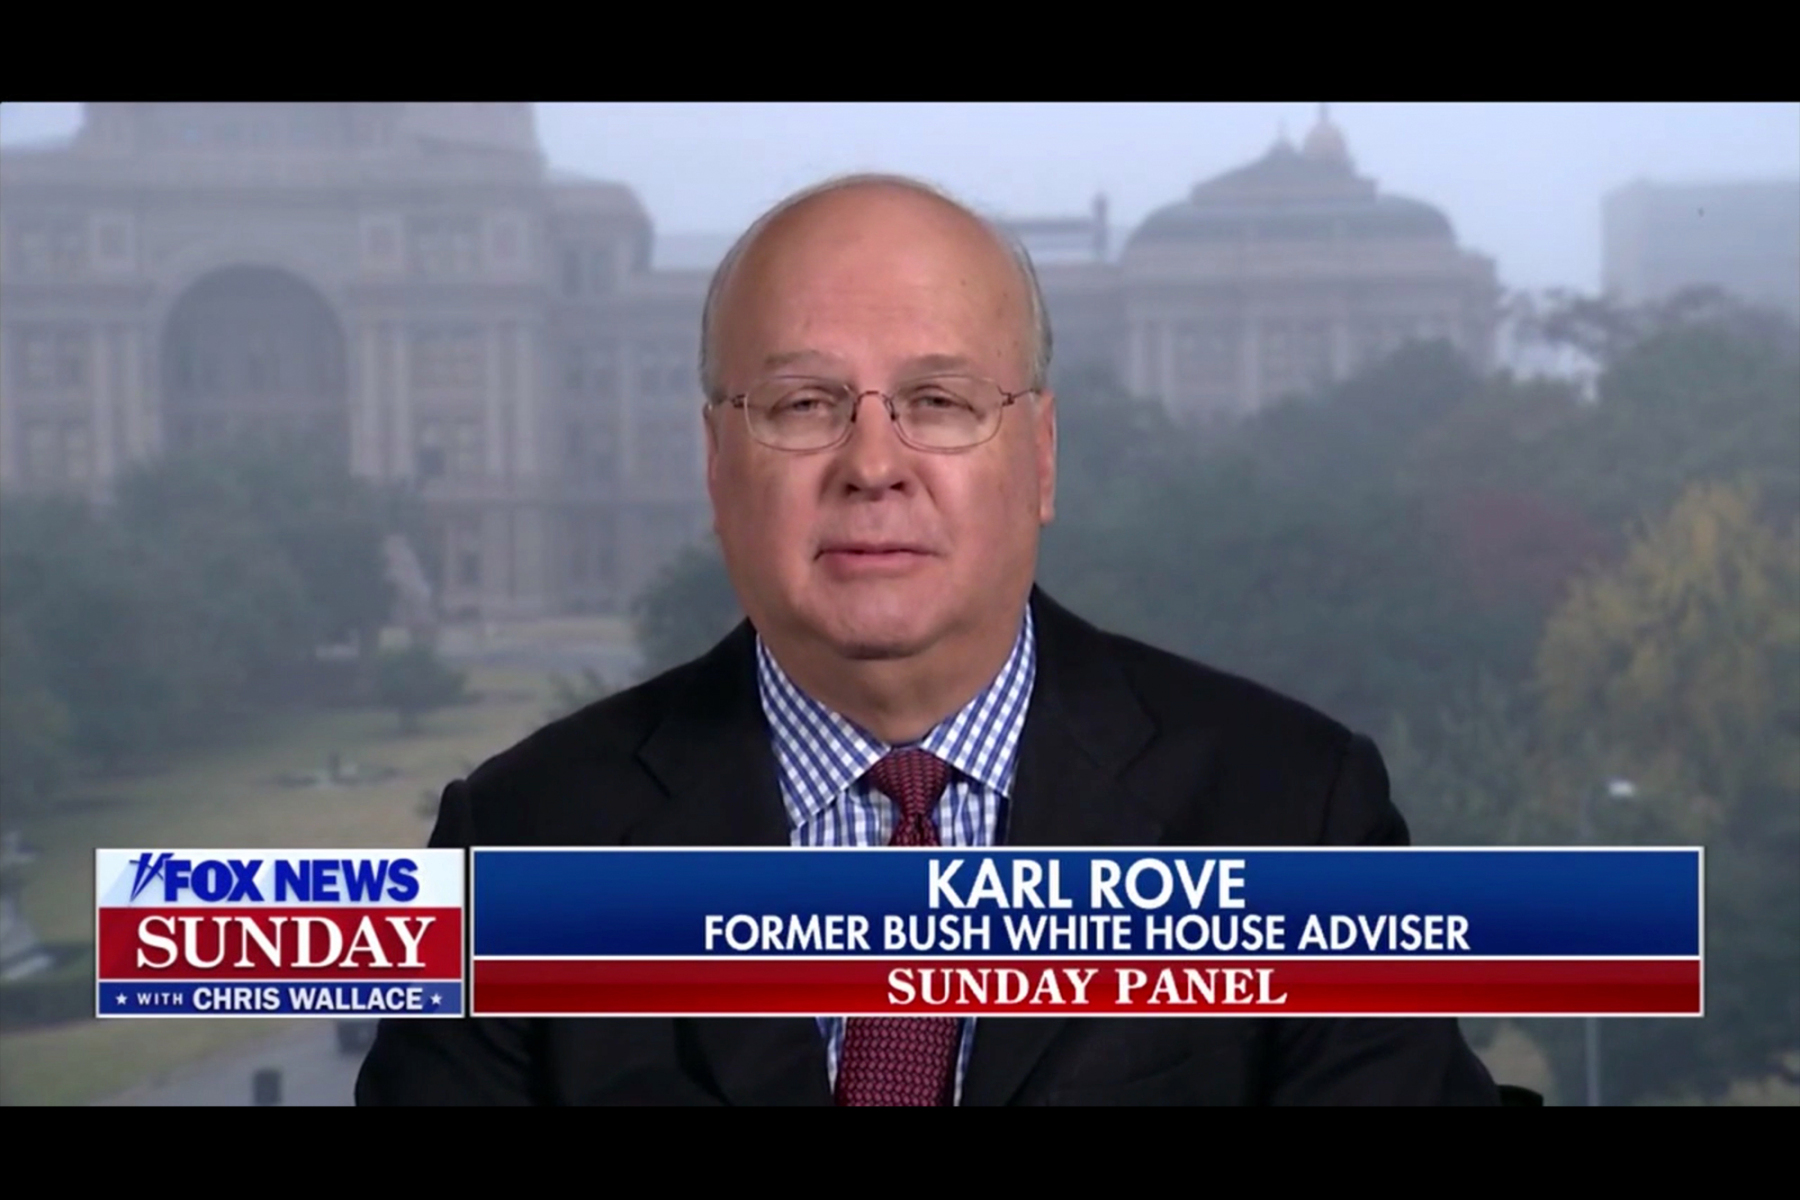 Karl Rove Rips Trump: 'Americans Don't Like Sore Losers' - Rolling Stone